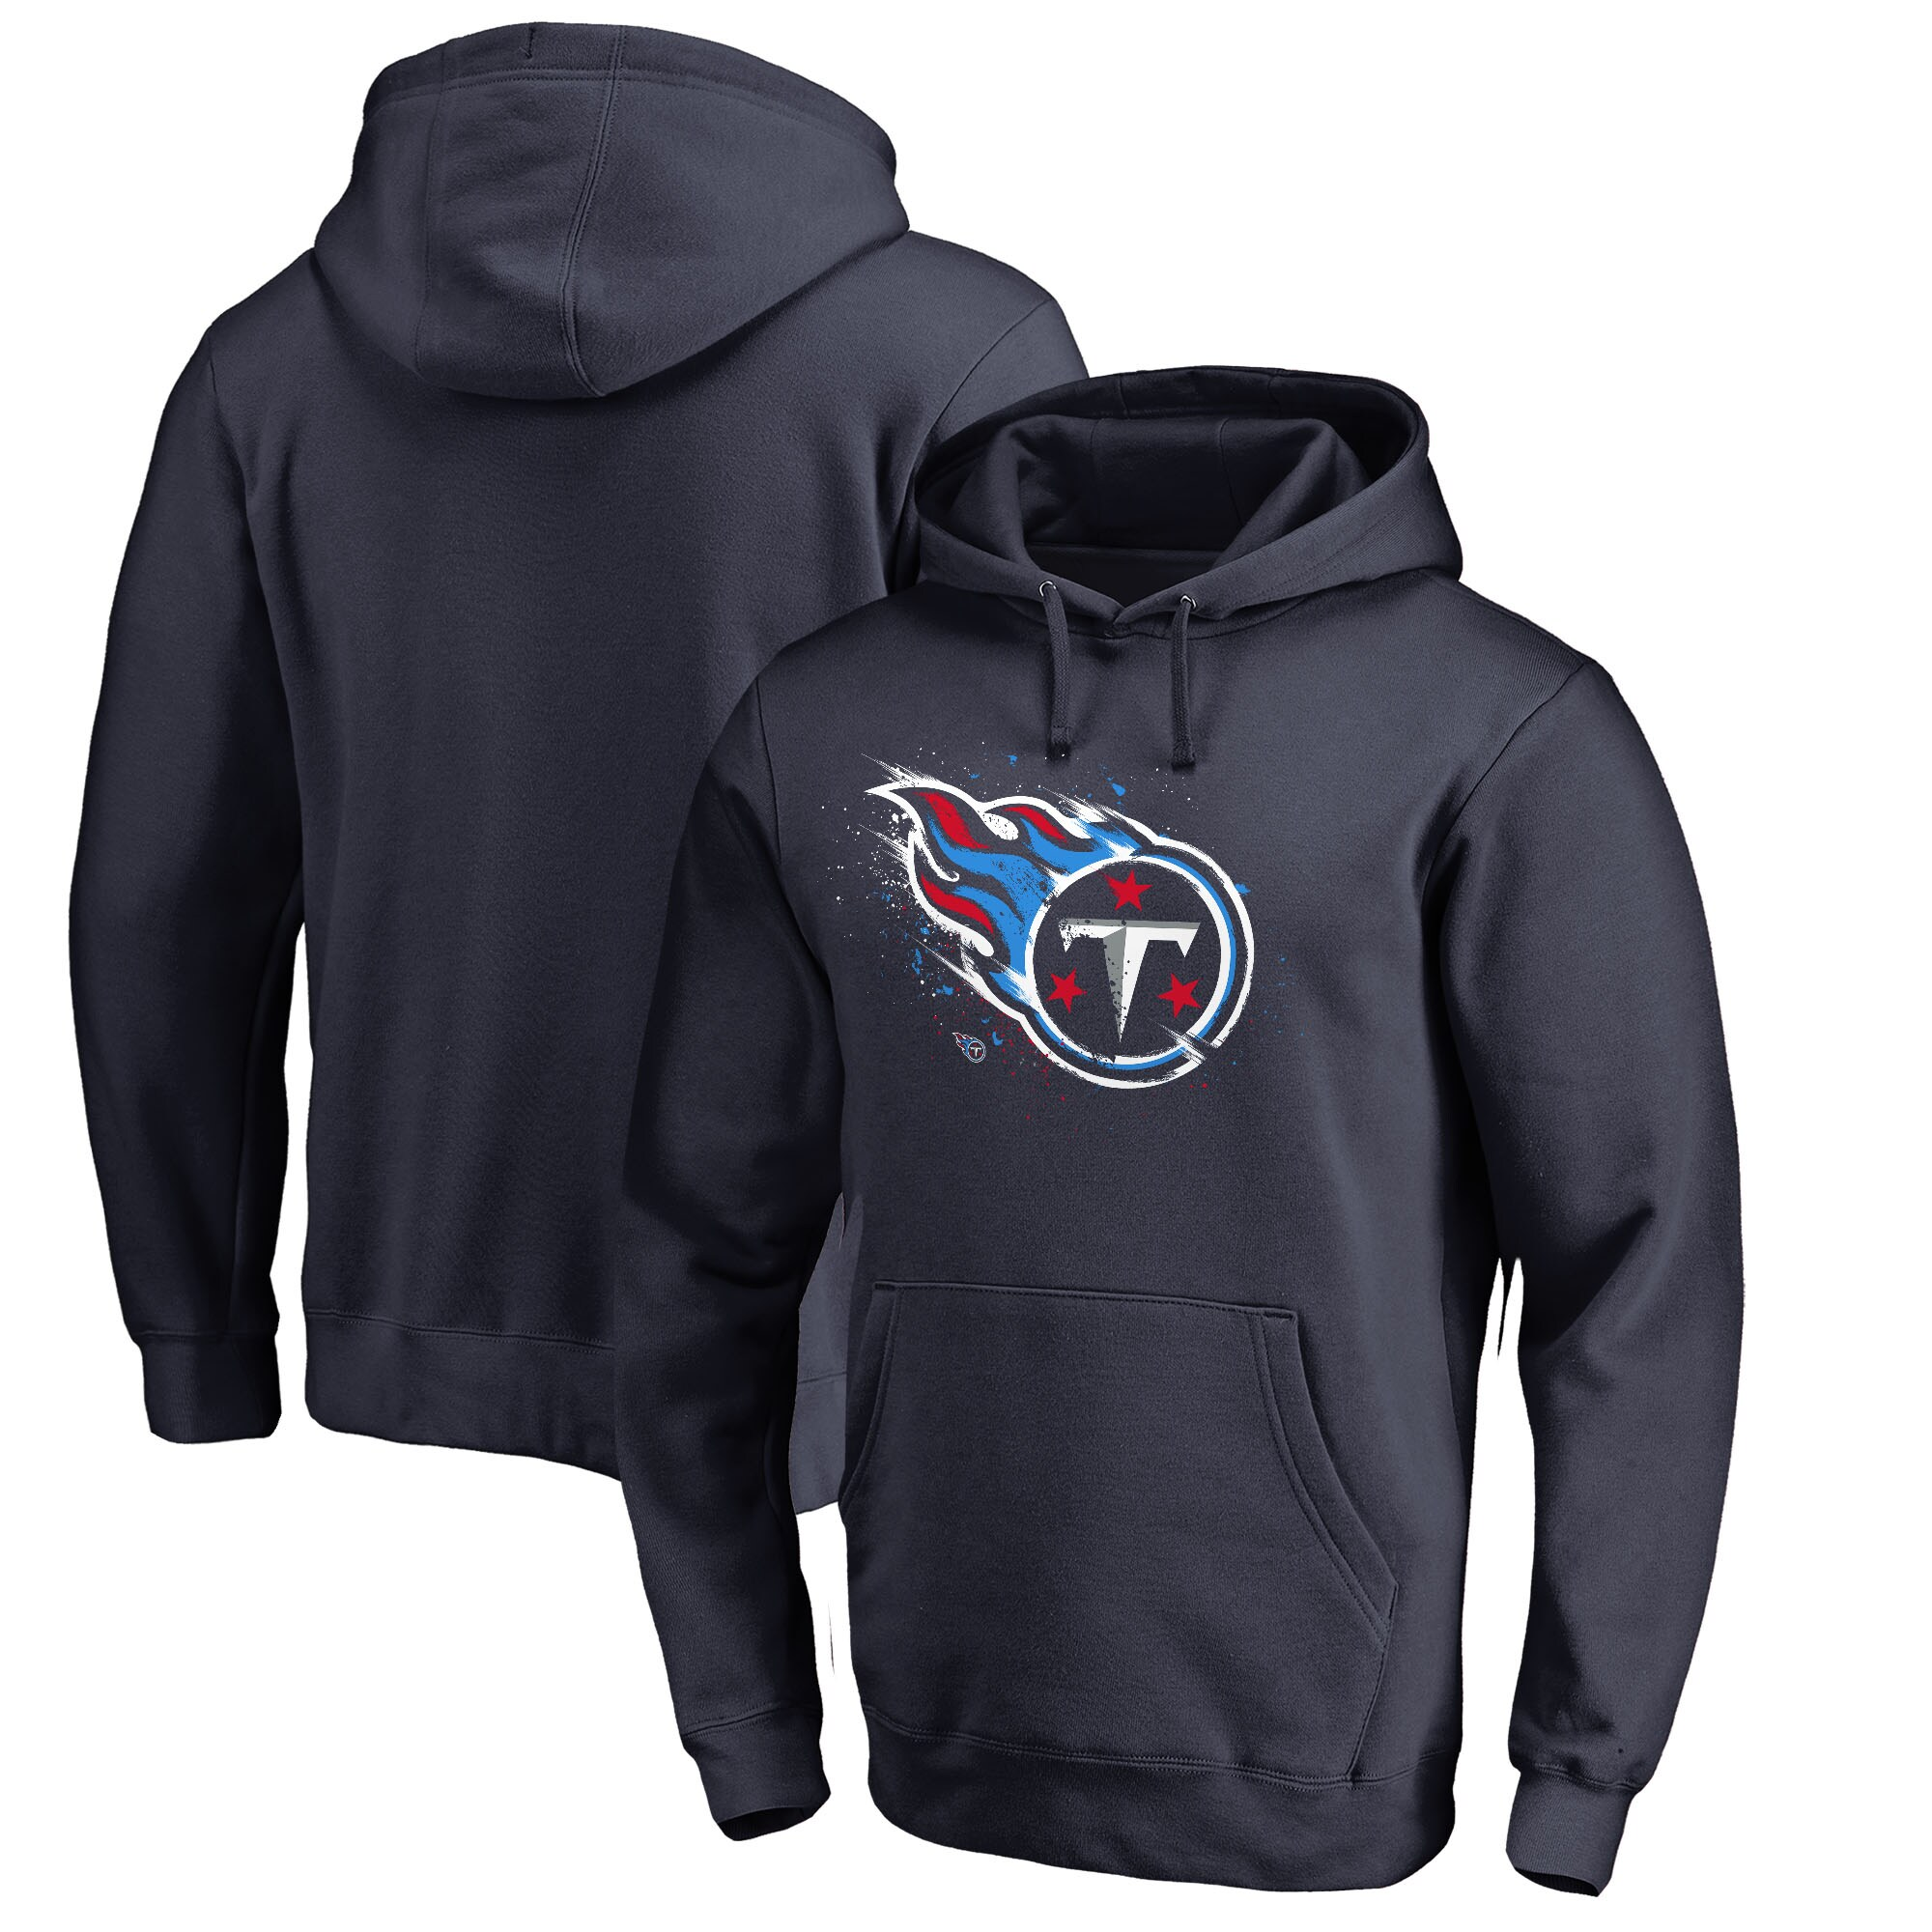 Tennessee Titans NFL Pro Line by Fanatics Branded Splatter Logo Pullover Hoodie - Navy